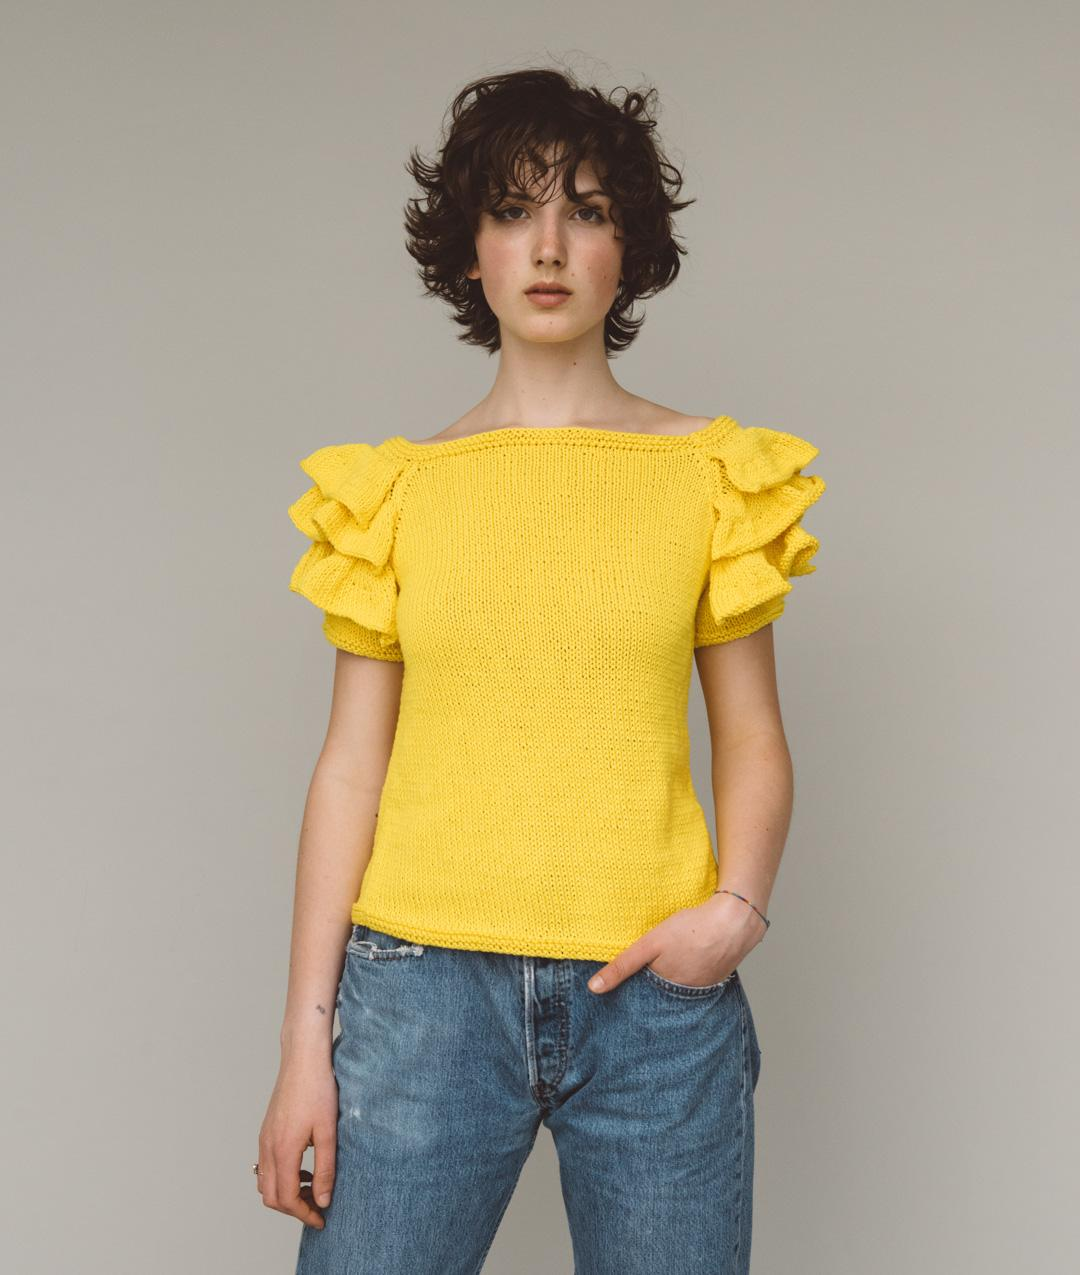 Summer 2018 Collection - Sweaters and Tops - Daffodil Tee - 1